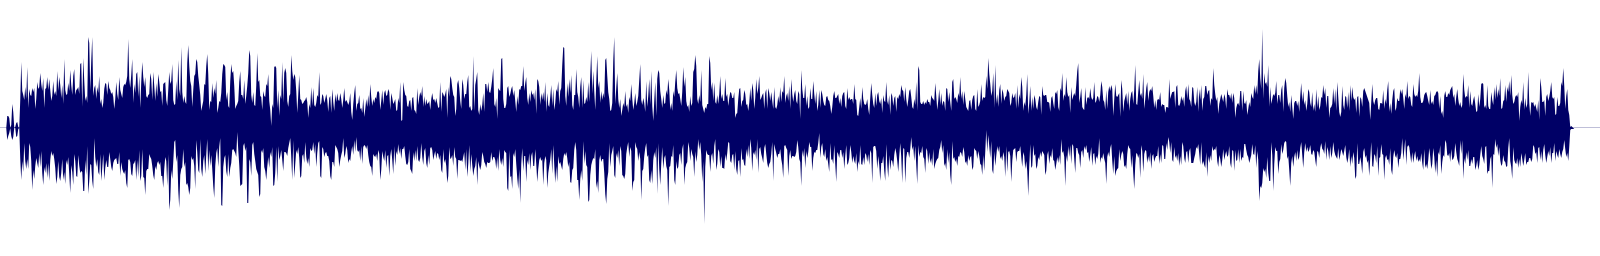 waveform of track #106420